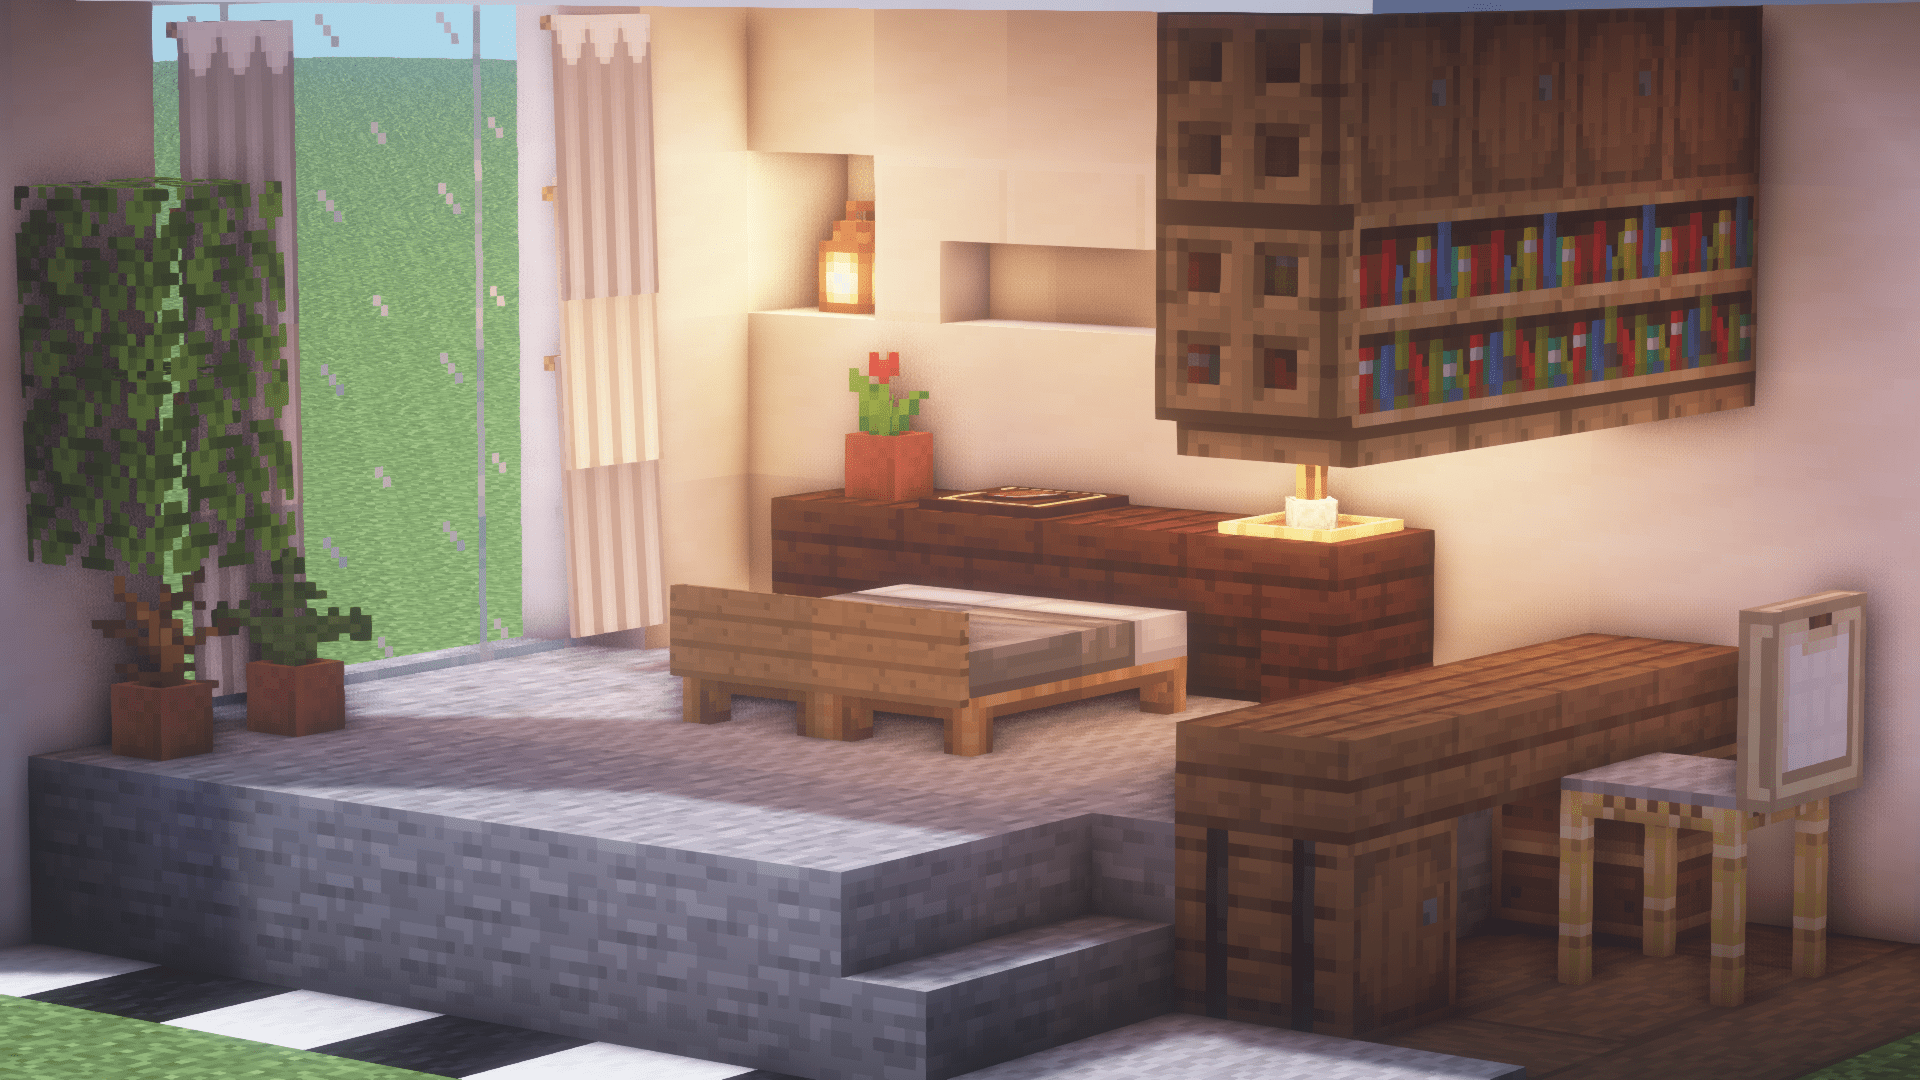 These bedroom cleaning tips from clean sweep will keep your home clean. Minimalist Room : Minecraft